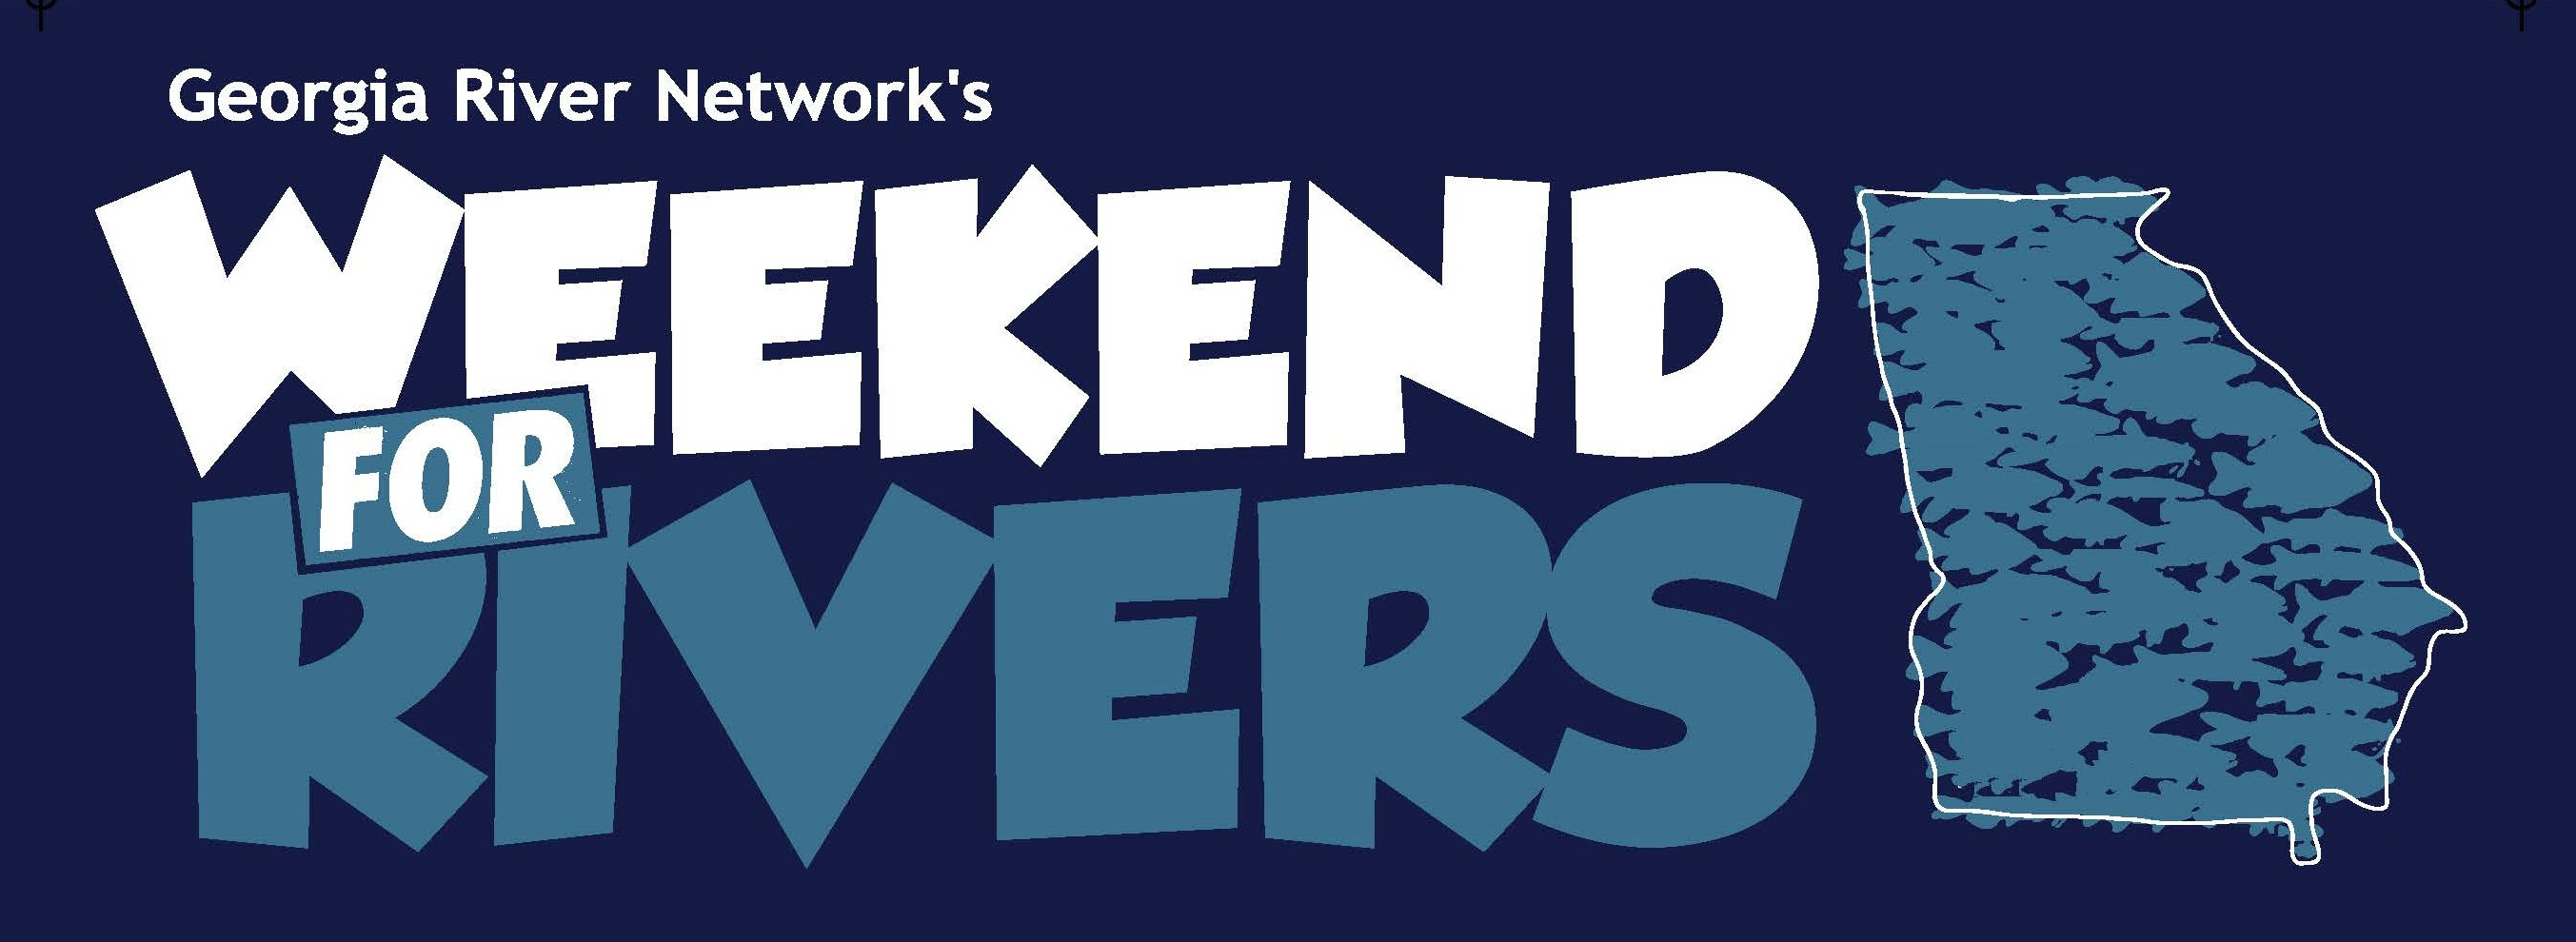 Weekend for rivers 5